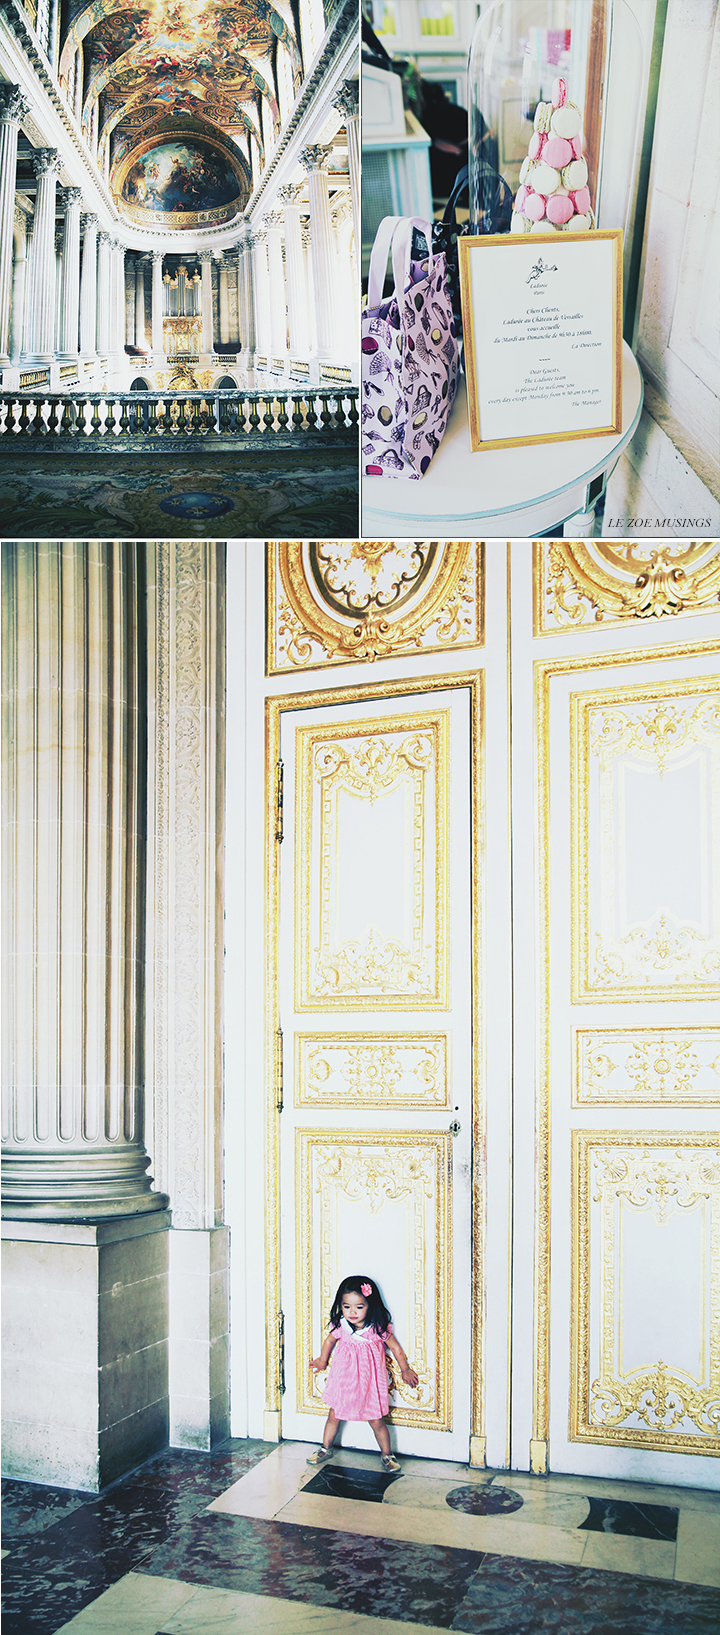 Palace of Versailles by Le Zoe Musings2